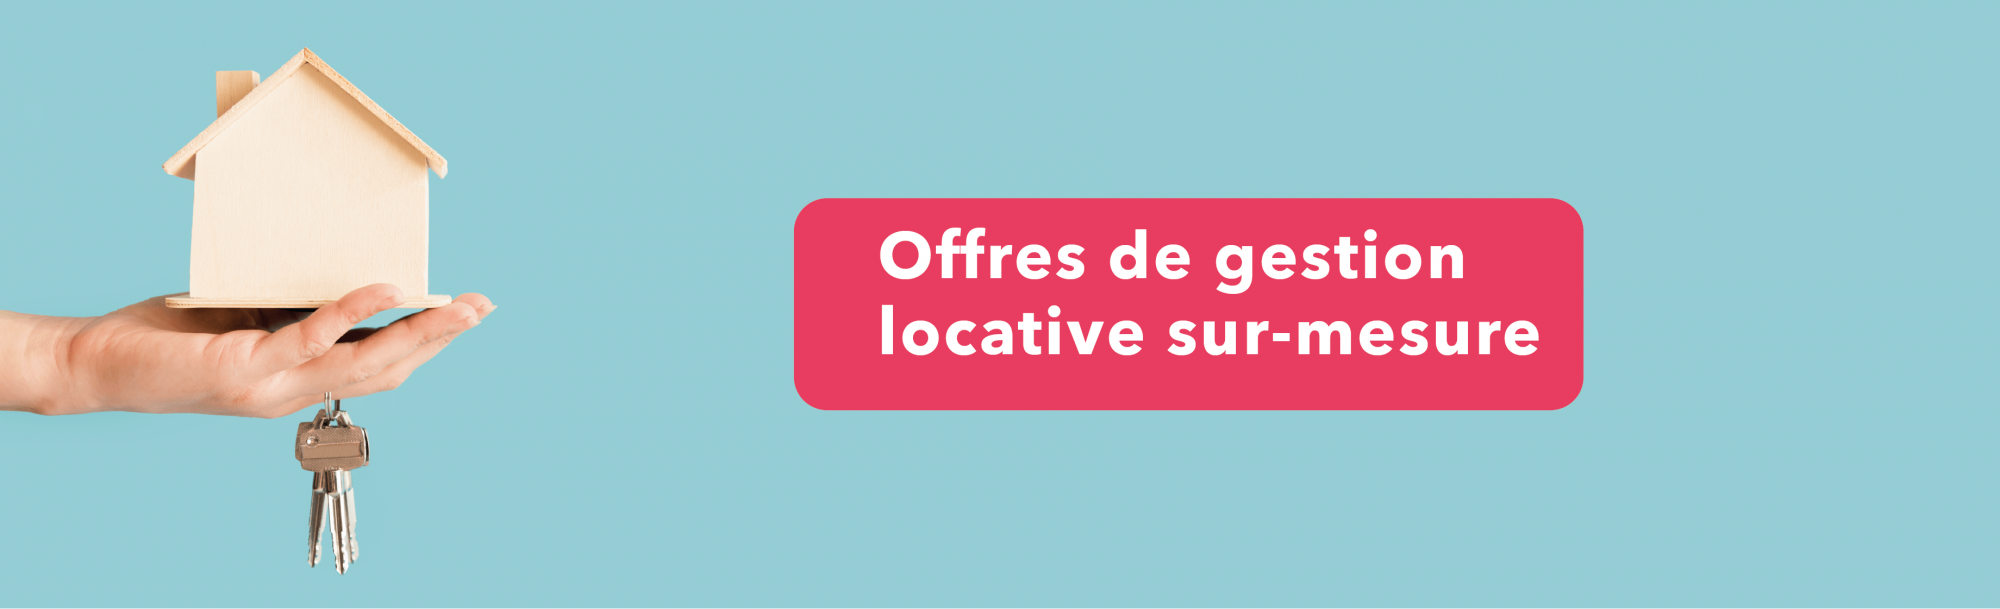 offre-gestion